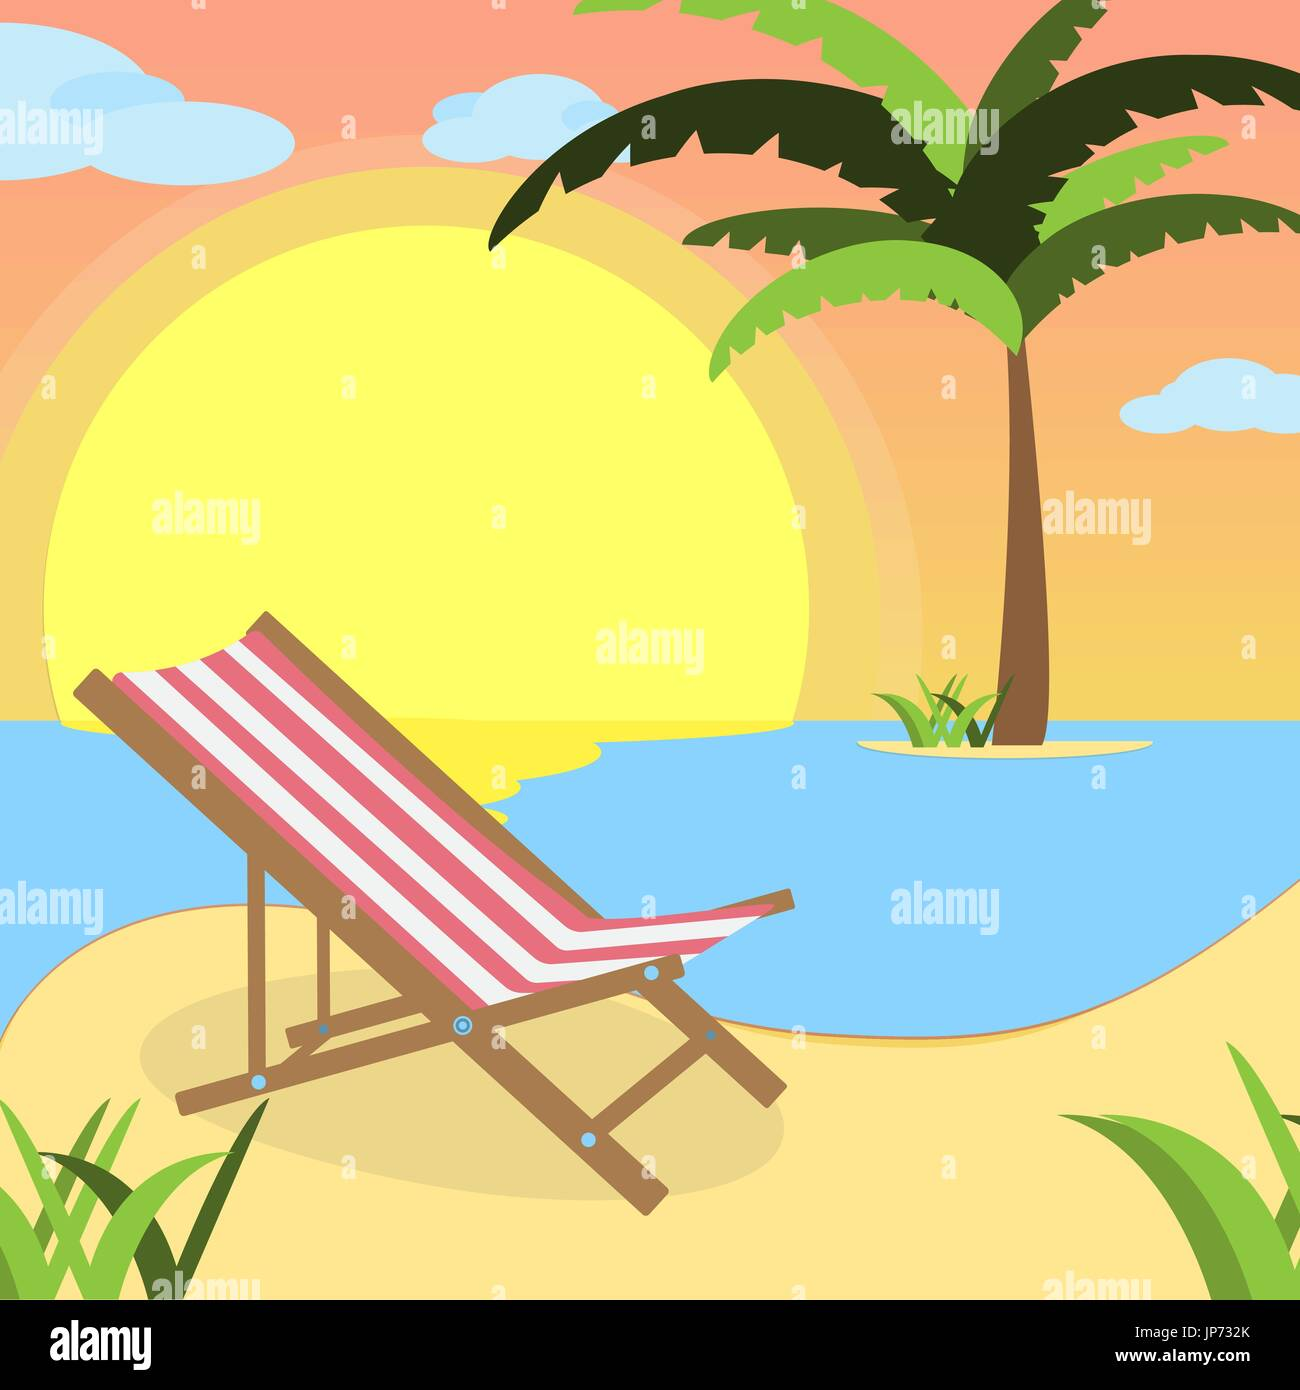 Summer background with red white lounger, of beach at sunset with waves, clouds and palm tree on the horizont. seaside view poster. vector illustration. Flat design - Stock Vector